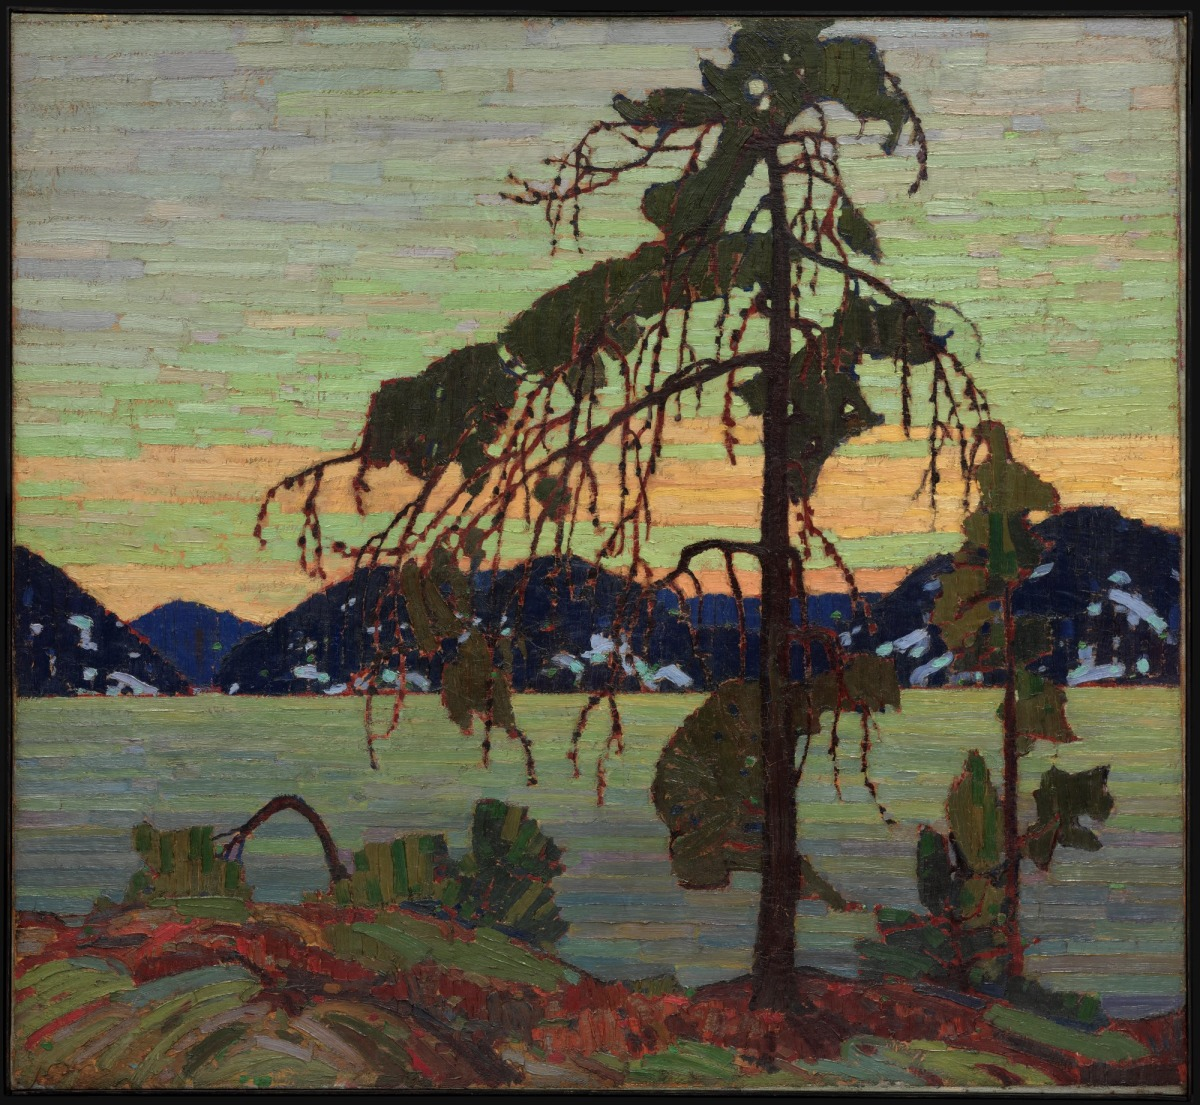 "<span class=""ee-status event-active-status-DTU"">Upcoming</span>Acrylic Painting 2 – Value, Emphasis, and Tom Thomson – ONLINE"